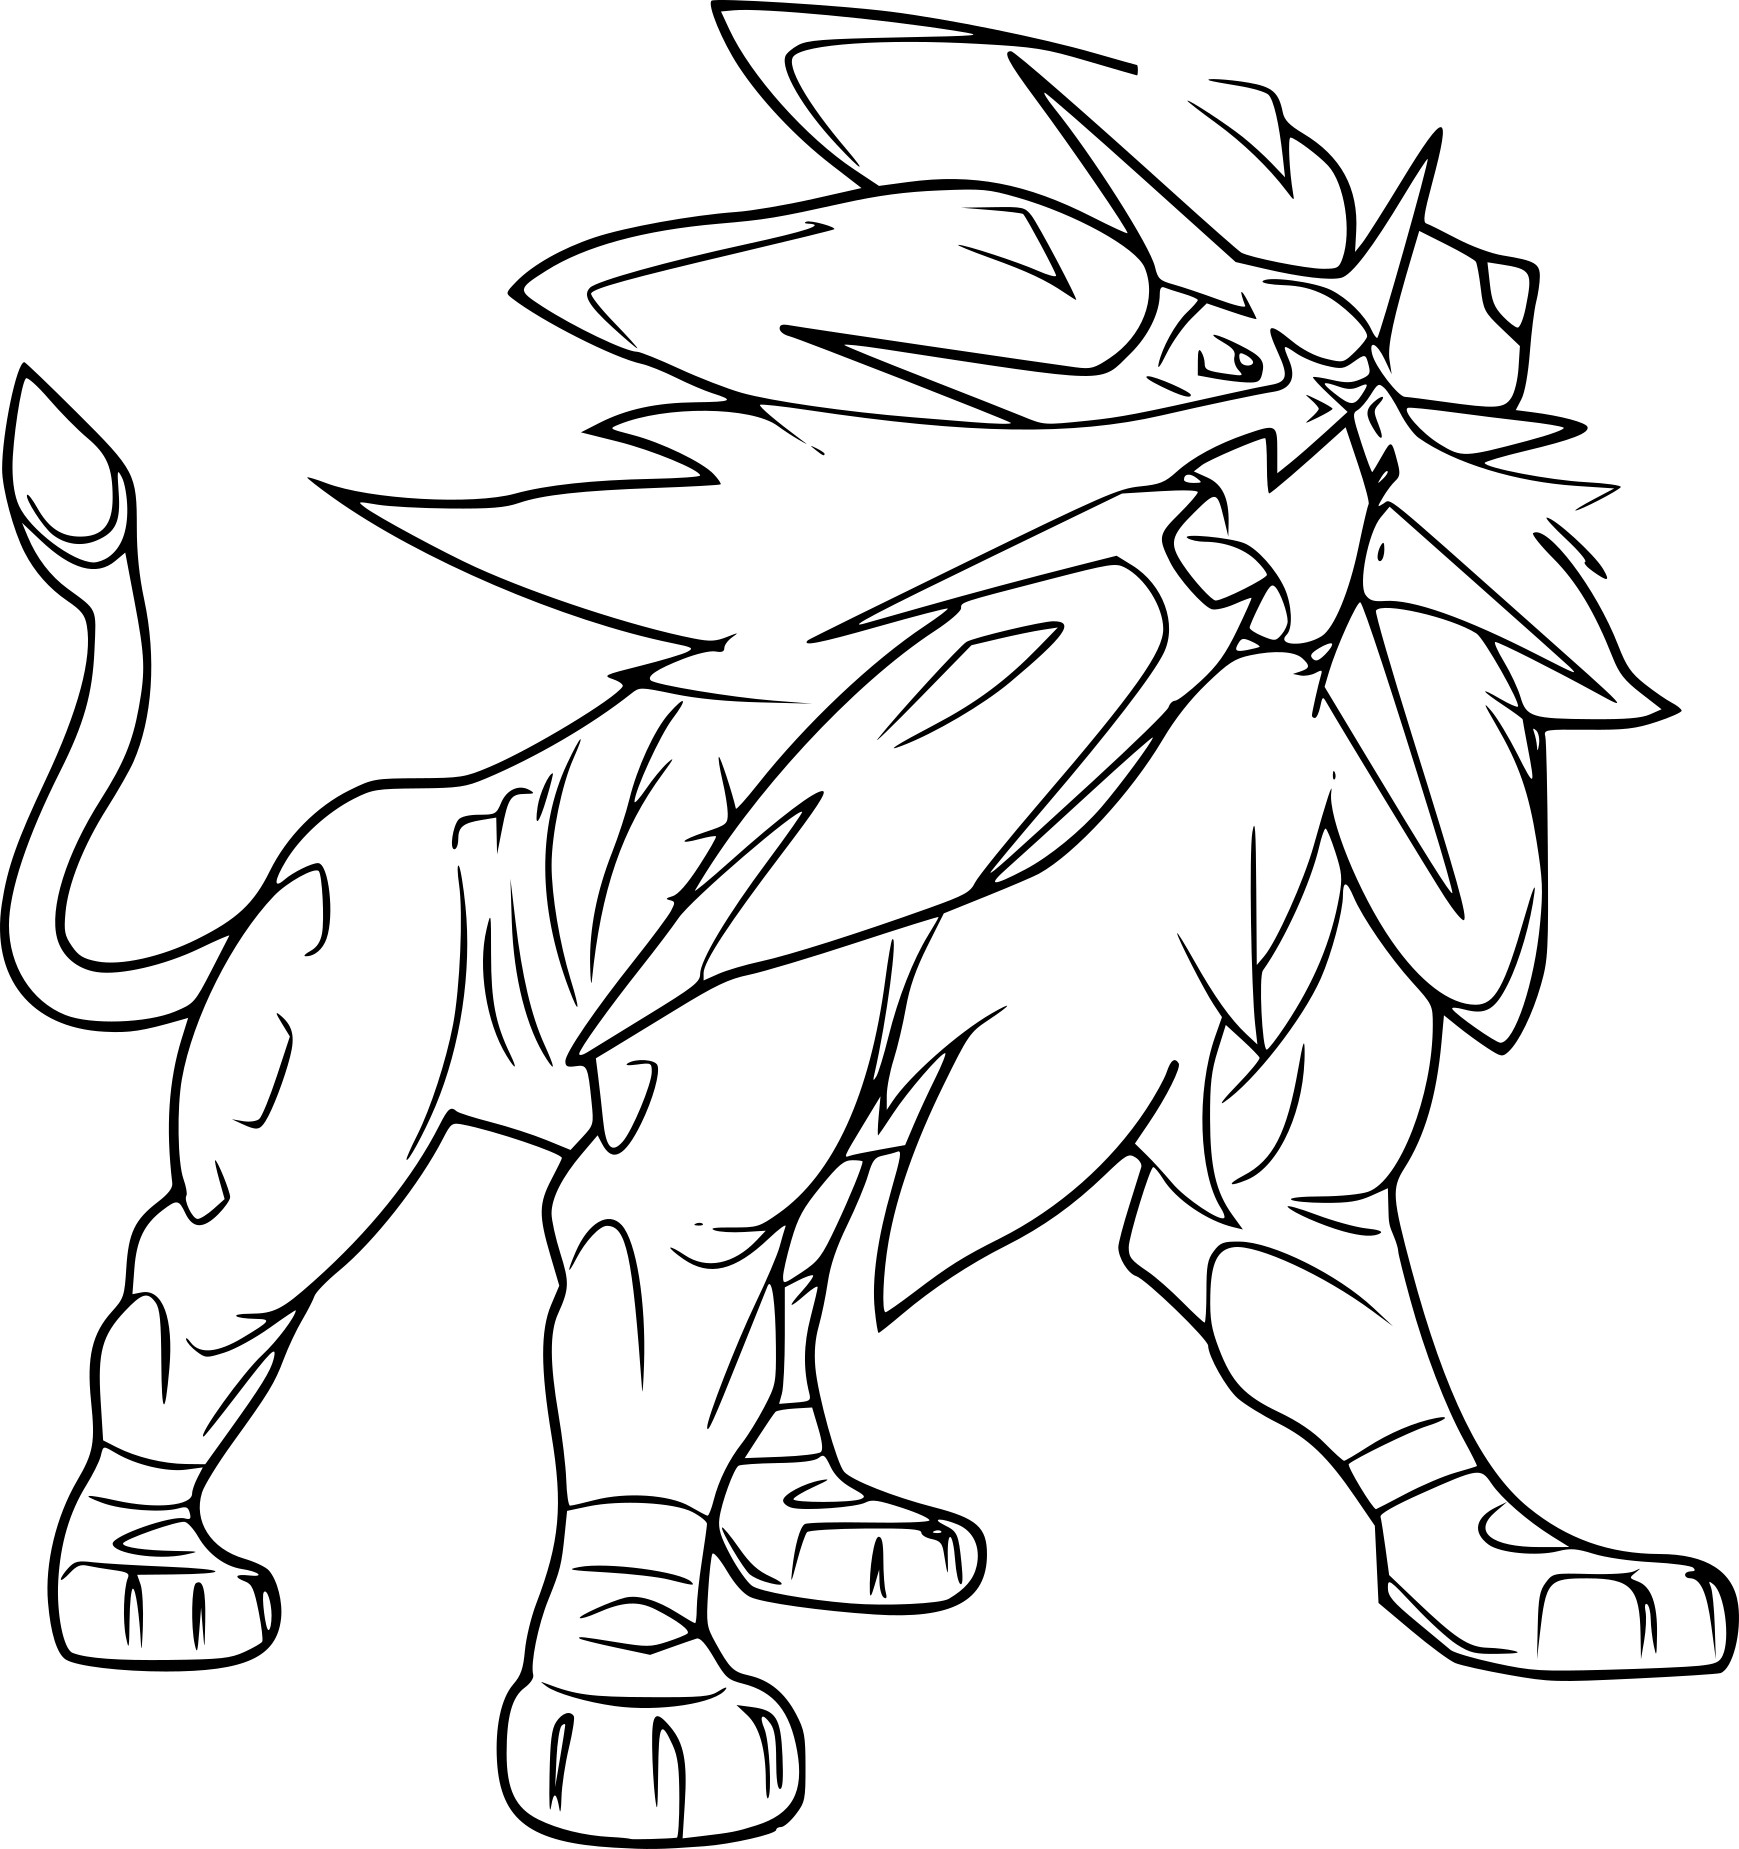 Coloriage solgaleo pokemon imprimer - Coloriage carte pokemon ...